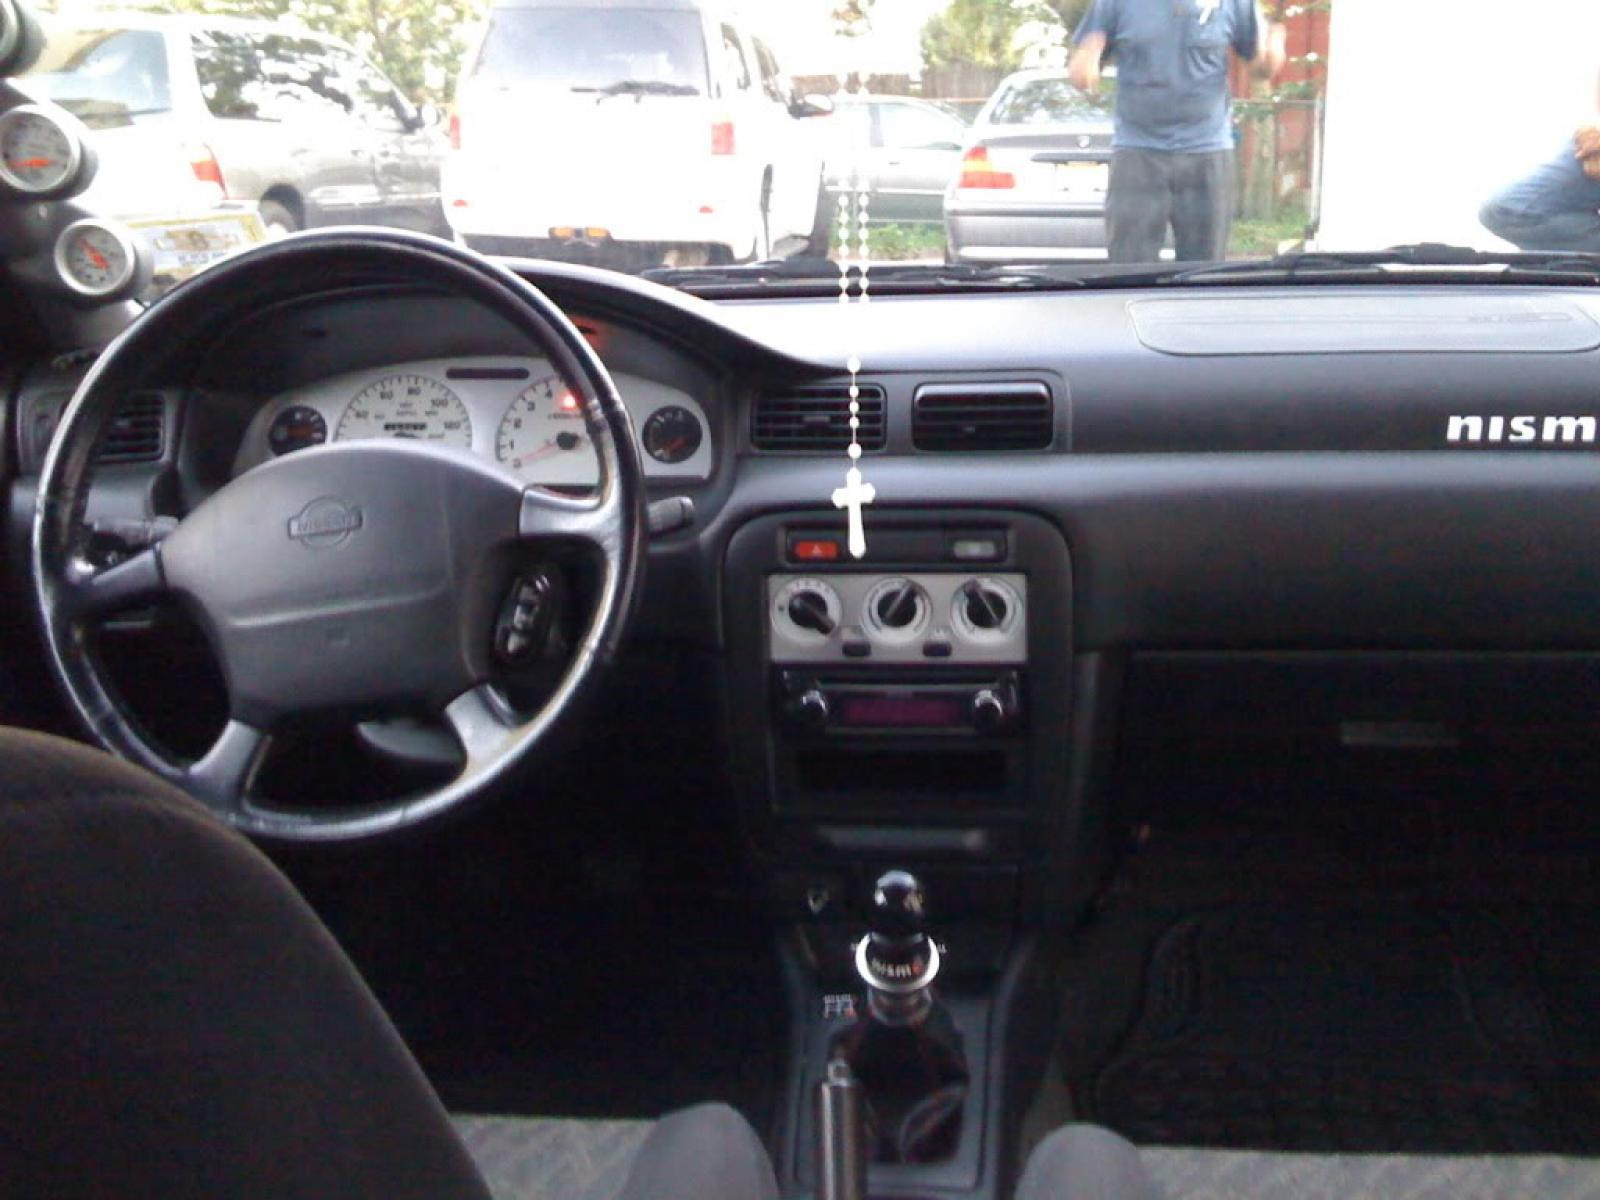 1998 Nissan Sentra - Information and photos - ZombieDrive